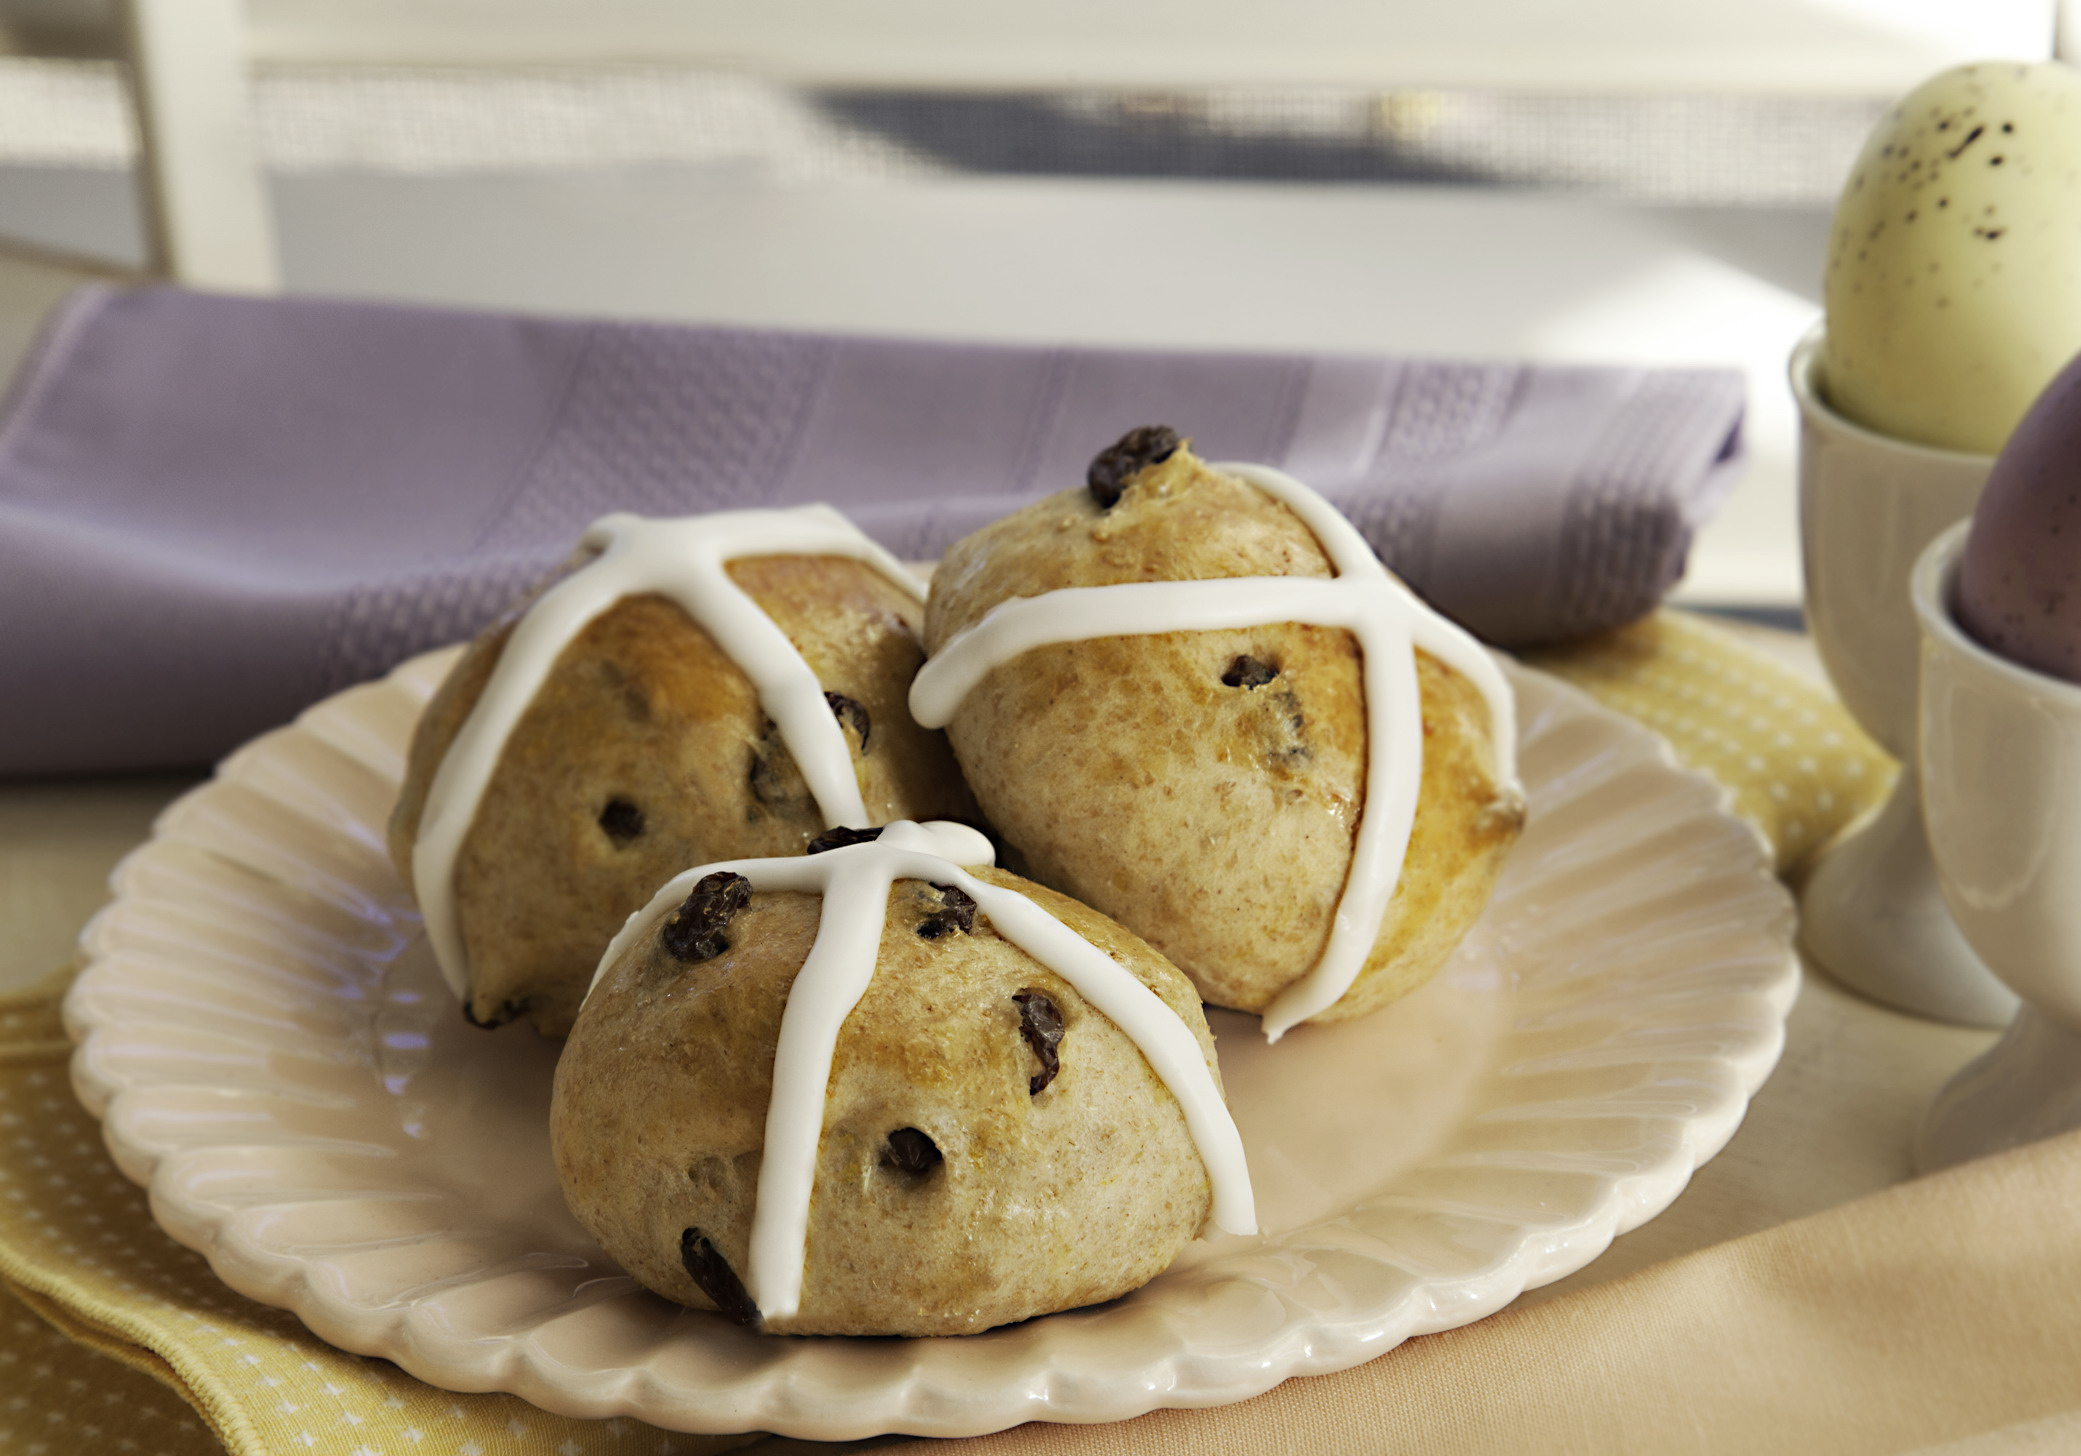 One-a-Penny Two-a-Penny Hot Cross Buns